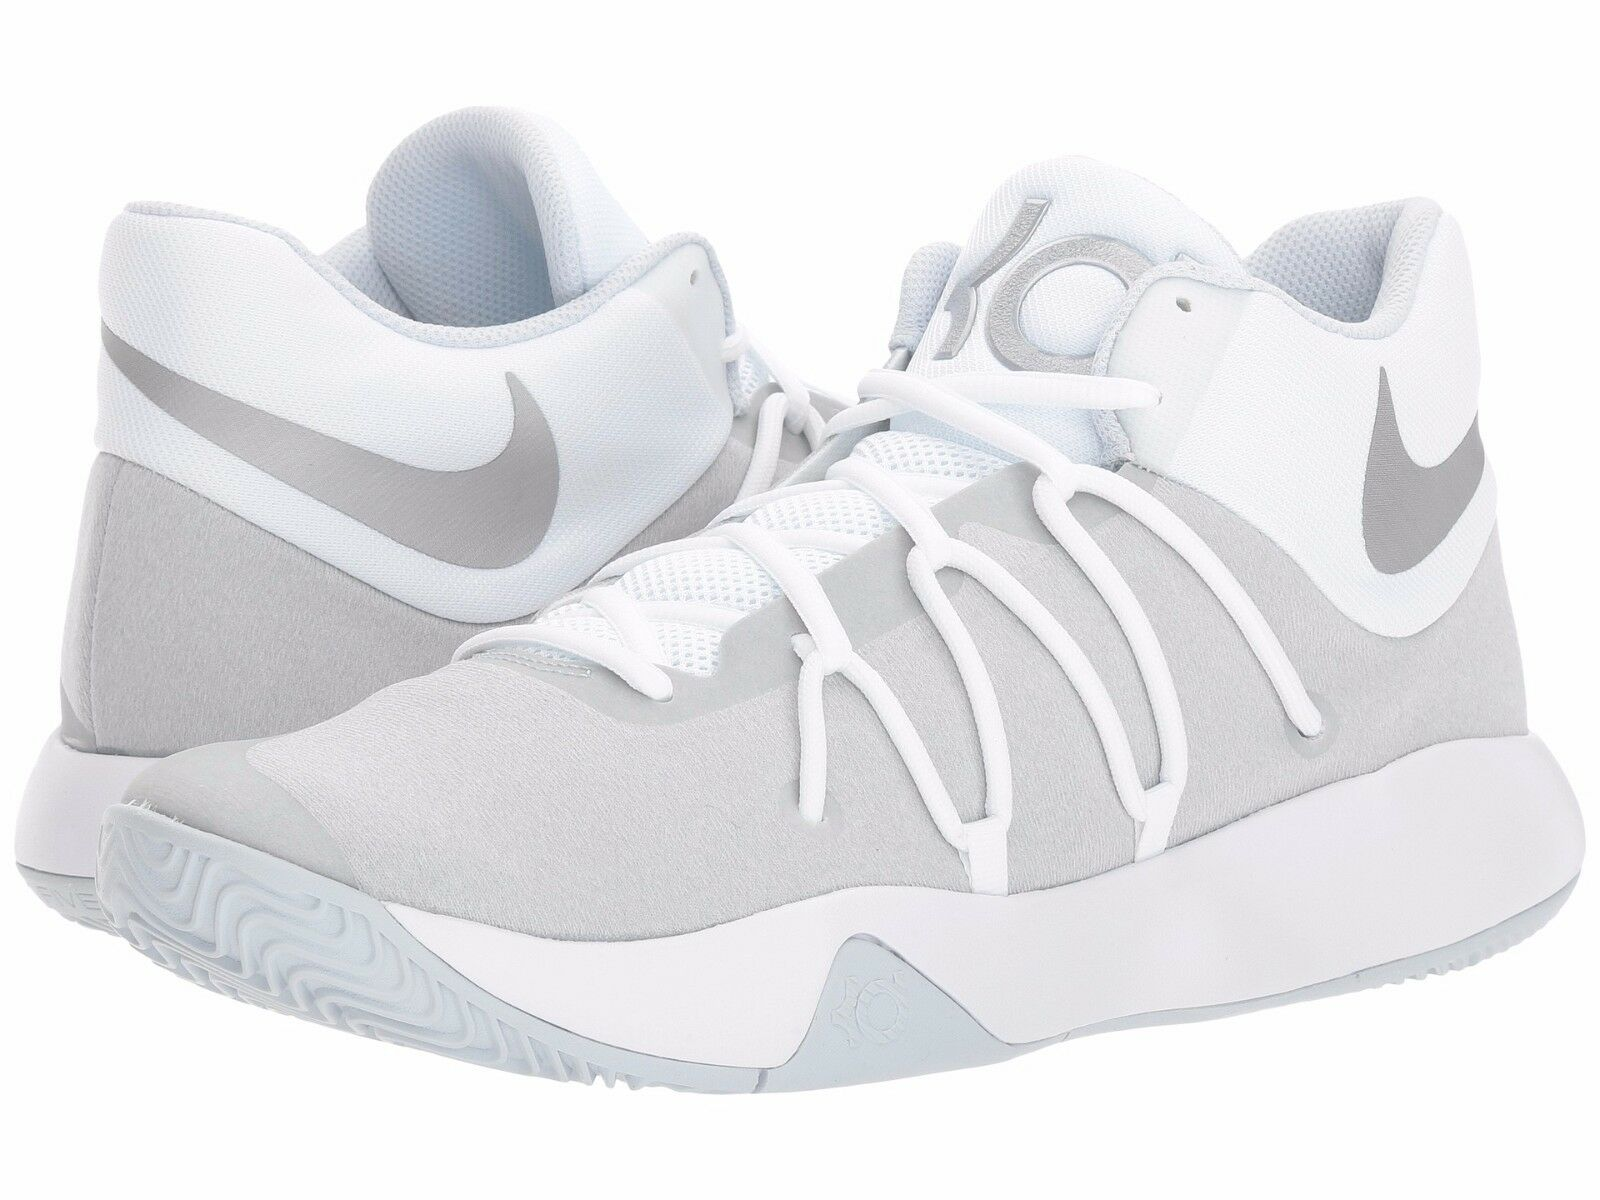 Seasonal price cuts, discount benefits Men's Nike KD Trey V Basketball Shoes White/Chrome-Platinum NIB 897638-100